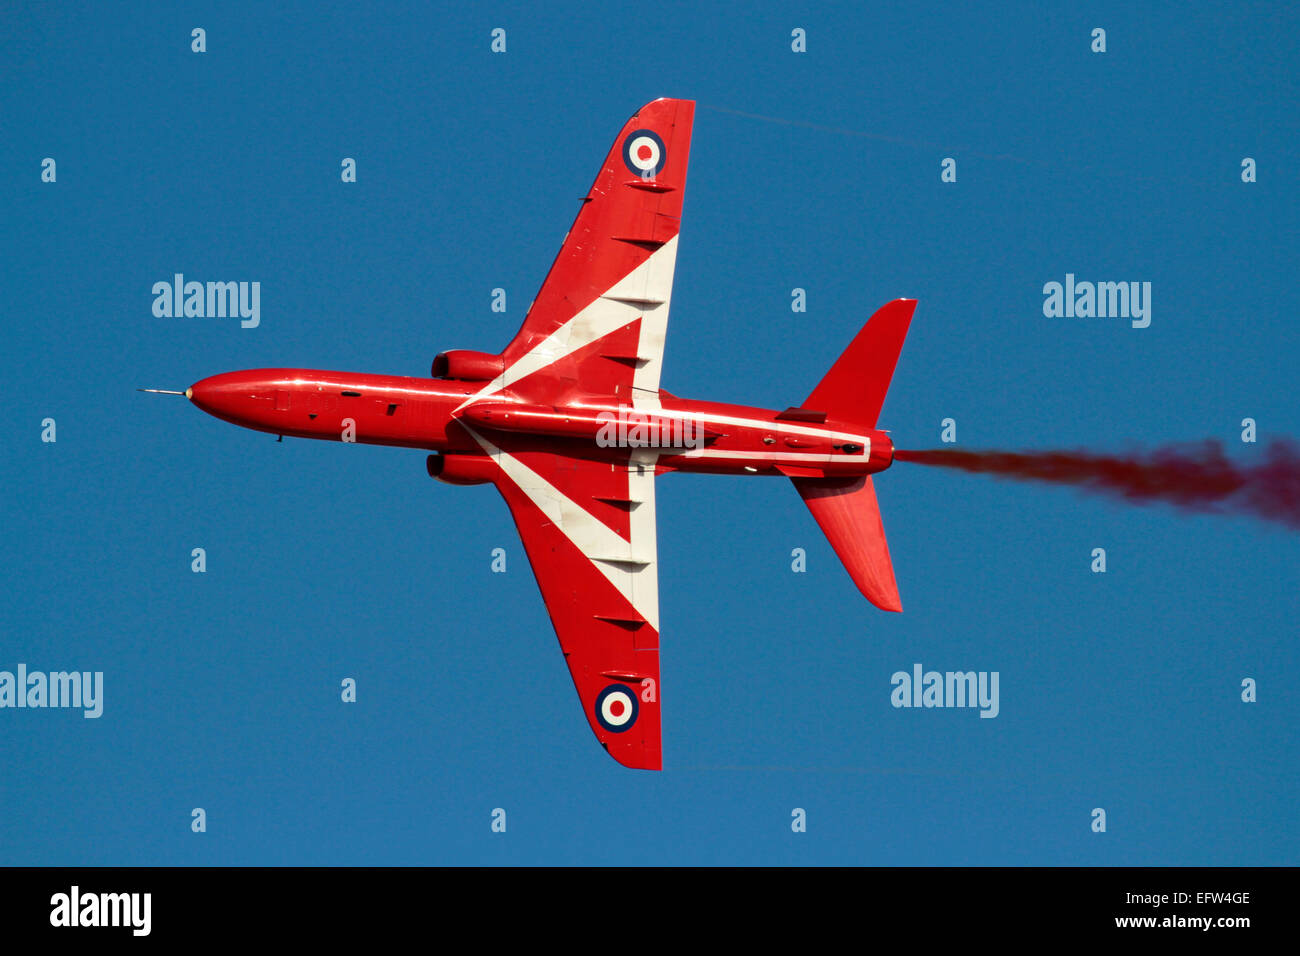 British Aerospace Hawk of the Royal Air Force aerobatic team the Red Arrows during a display - Stock Image